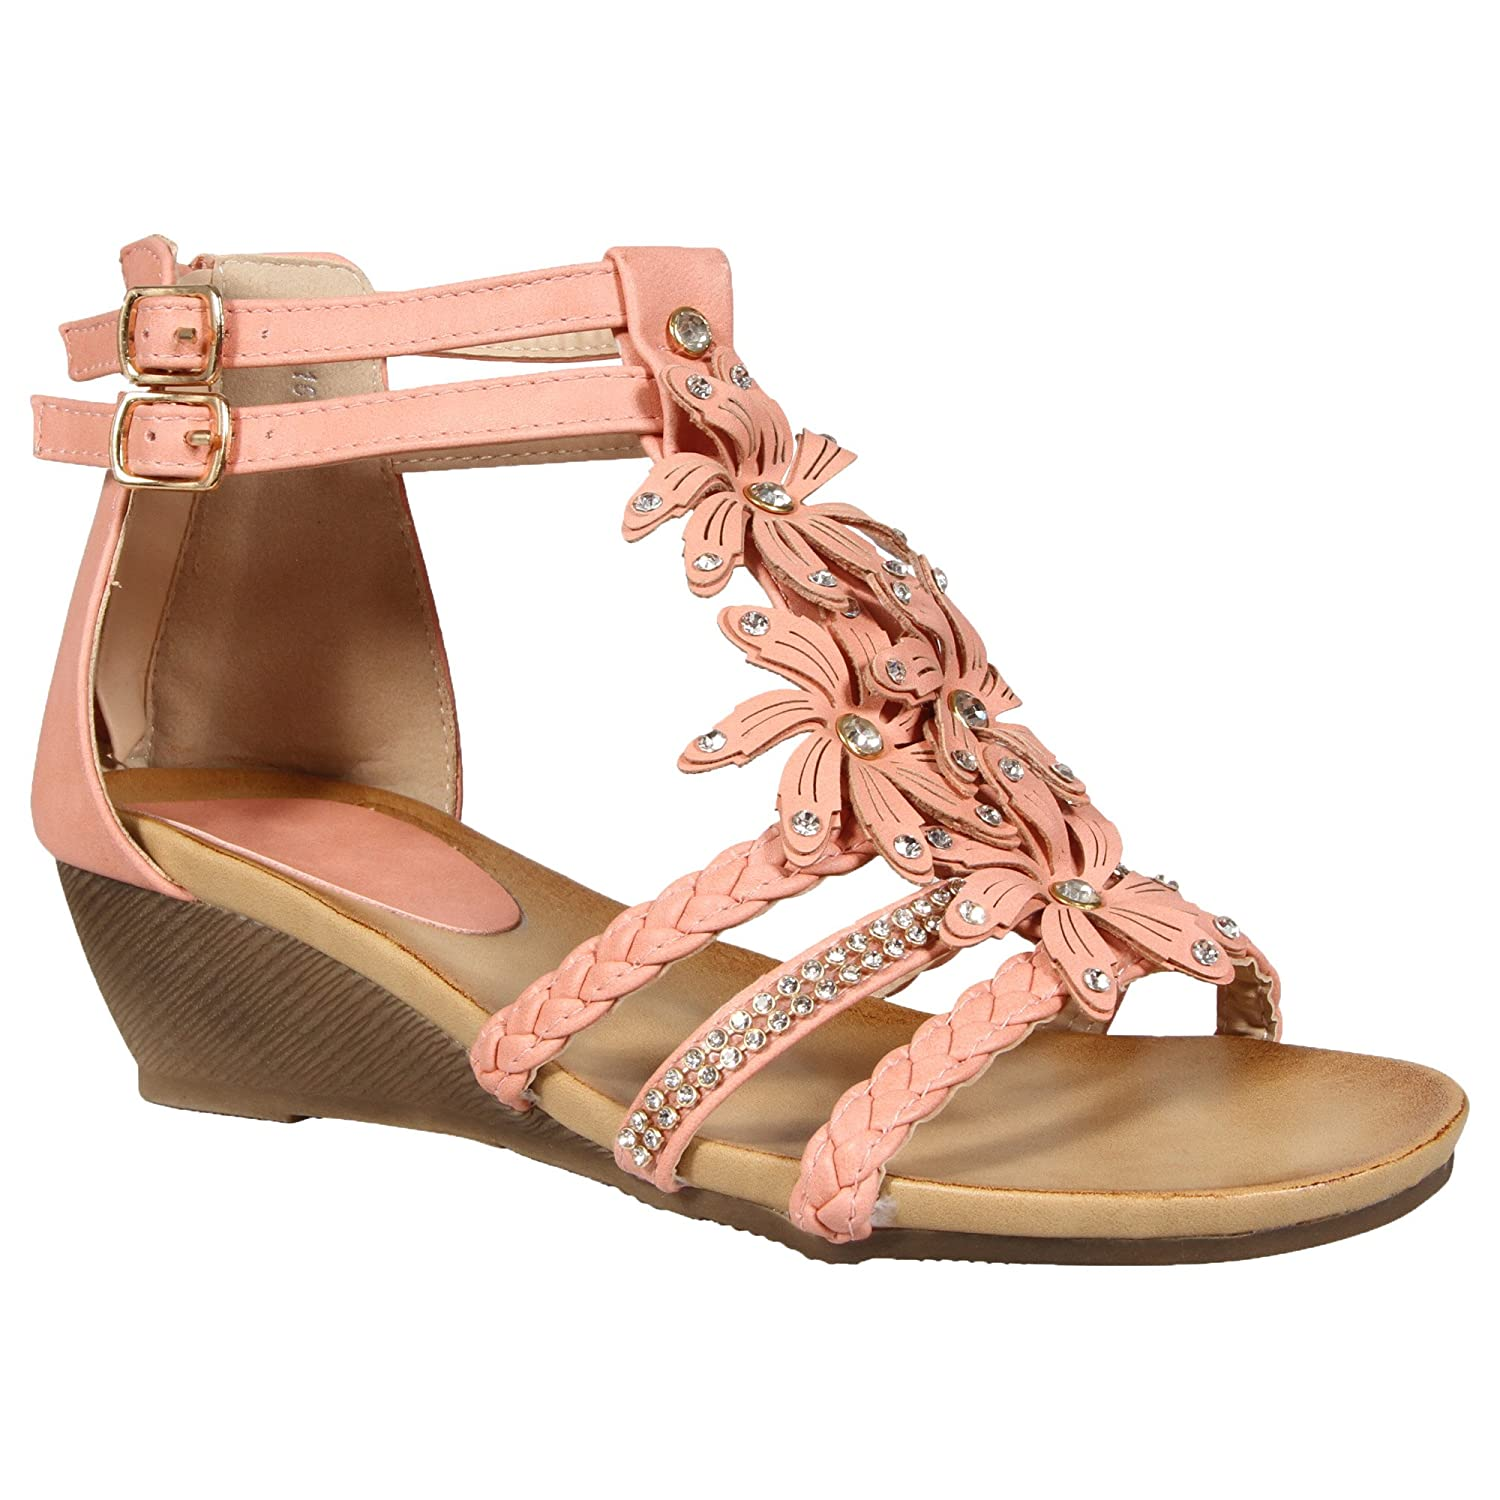 294014bf0aa3b0 LADIES WOMENS GLADIATOR STRAPPY WEDGE SANDAL SUMMER EVENING DRESS PARTY  SHOE DIAMANTE FLOWER FLORAL BEACH BUCKLE FASTENING CASUAL SANDALS LOW MID  HEEL ...